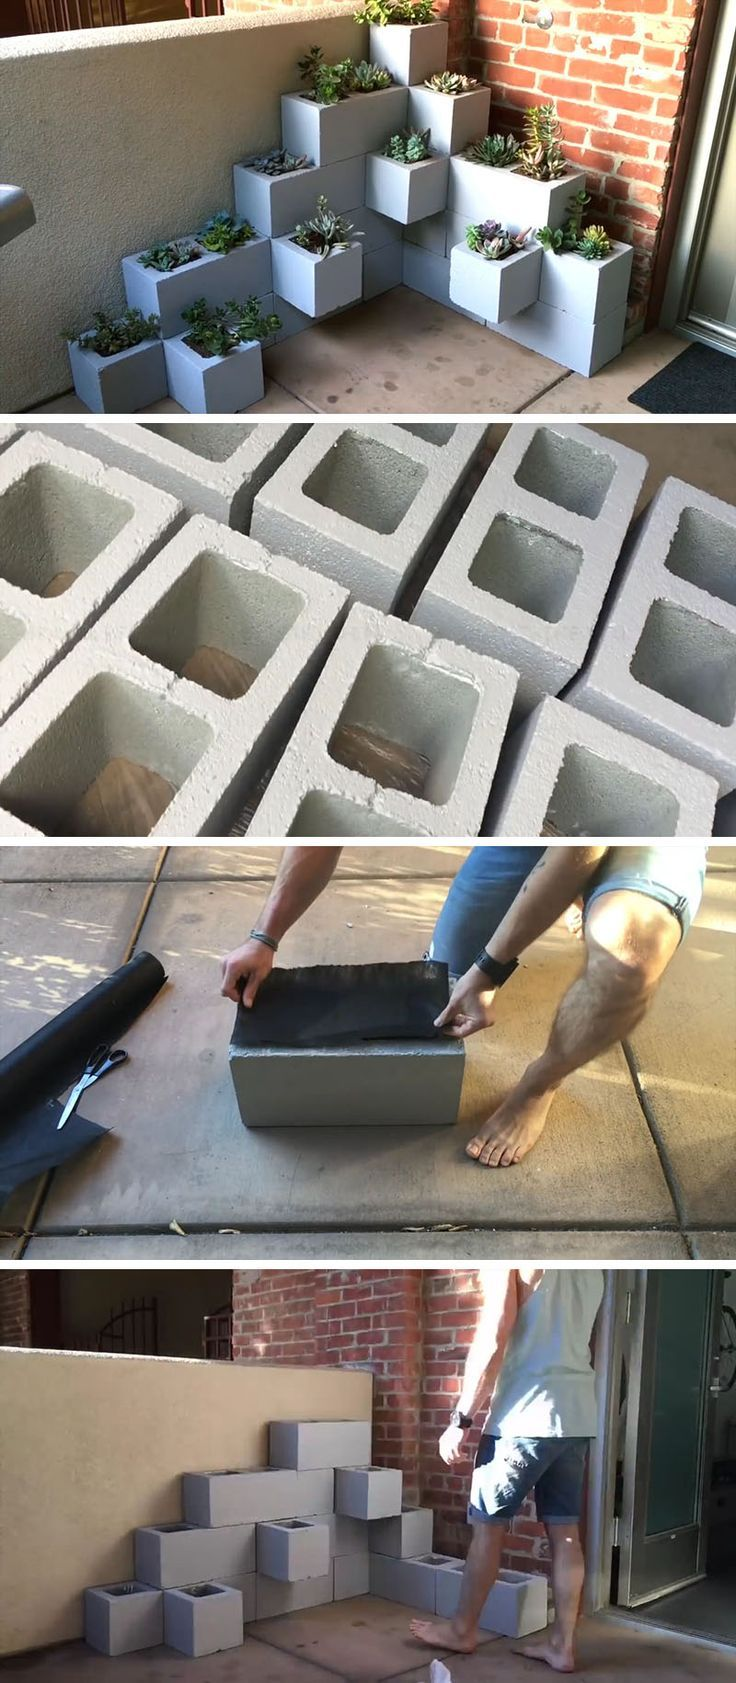 37 stenciled cinder block planter ideas and free 2017 from zola decor - Create Your Own Inexpensive Modern And Fully Customizable Diy Outdoor Succulent Planter Using Cinder Blocks